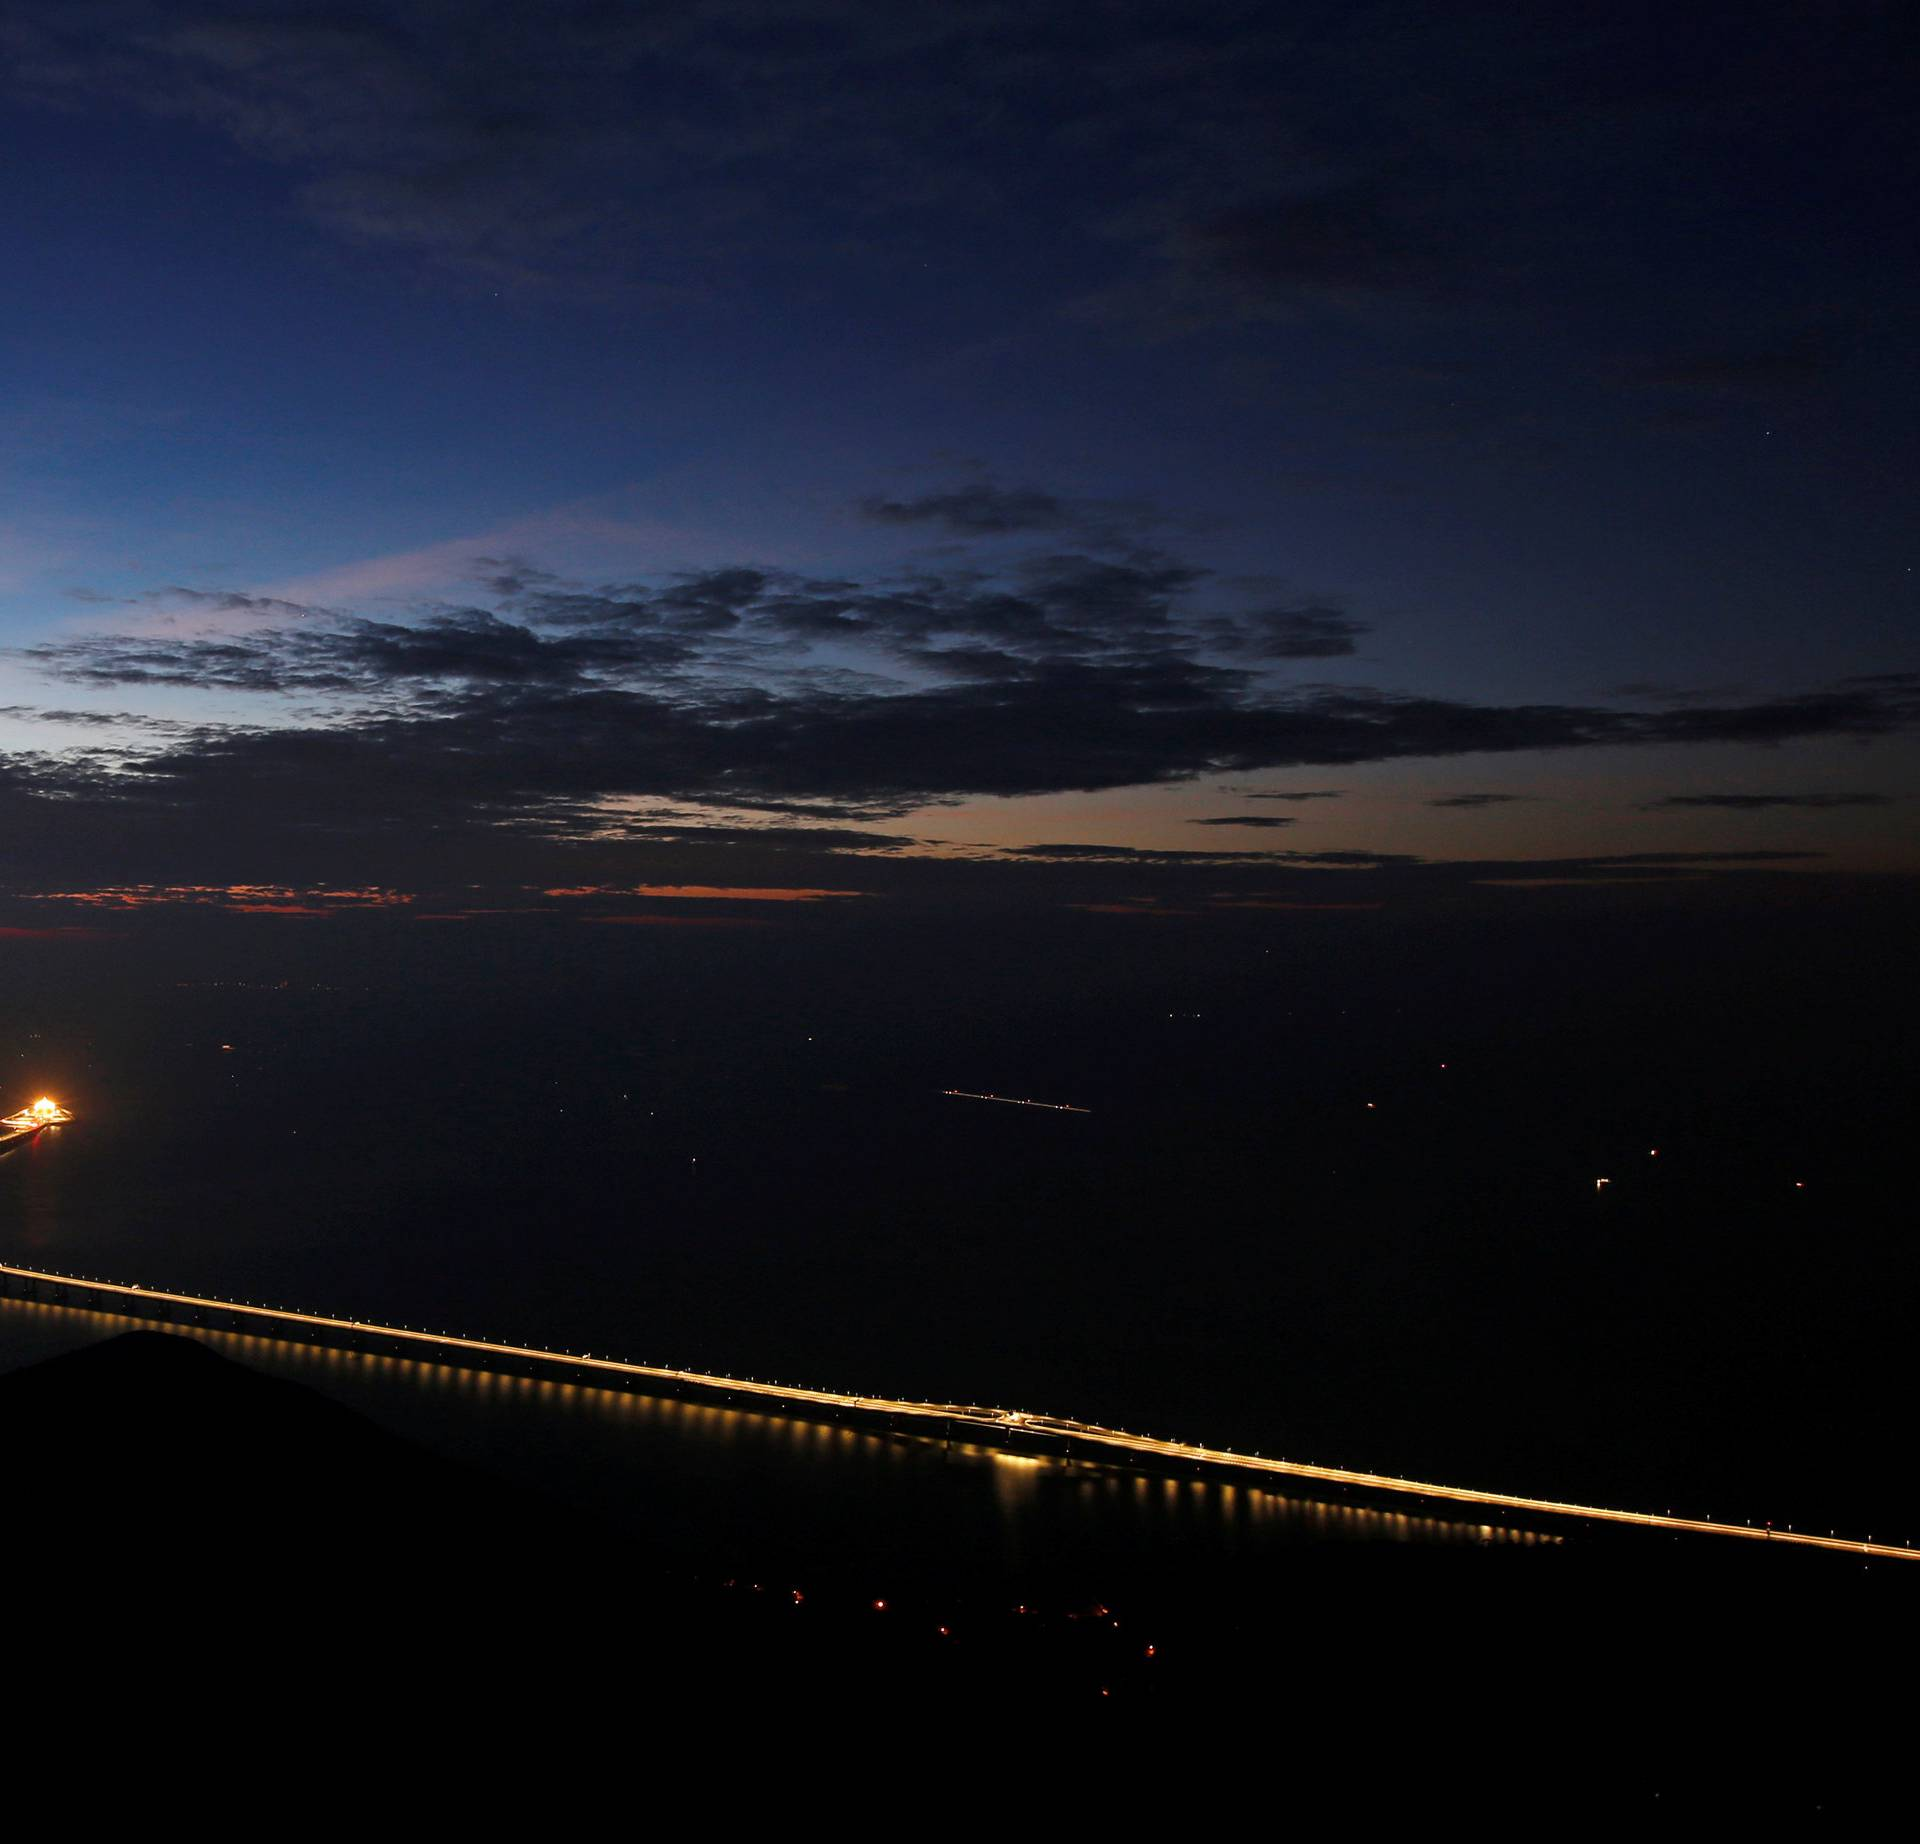 A sunset view of the Hong Kong-Zhuhai-Macau bridge off Lantau island in Hong Kong